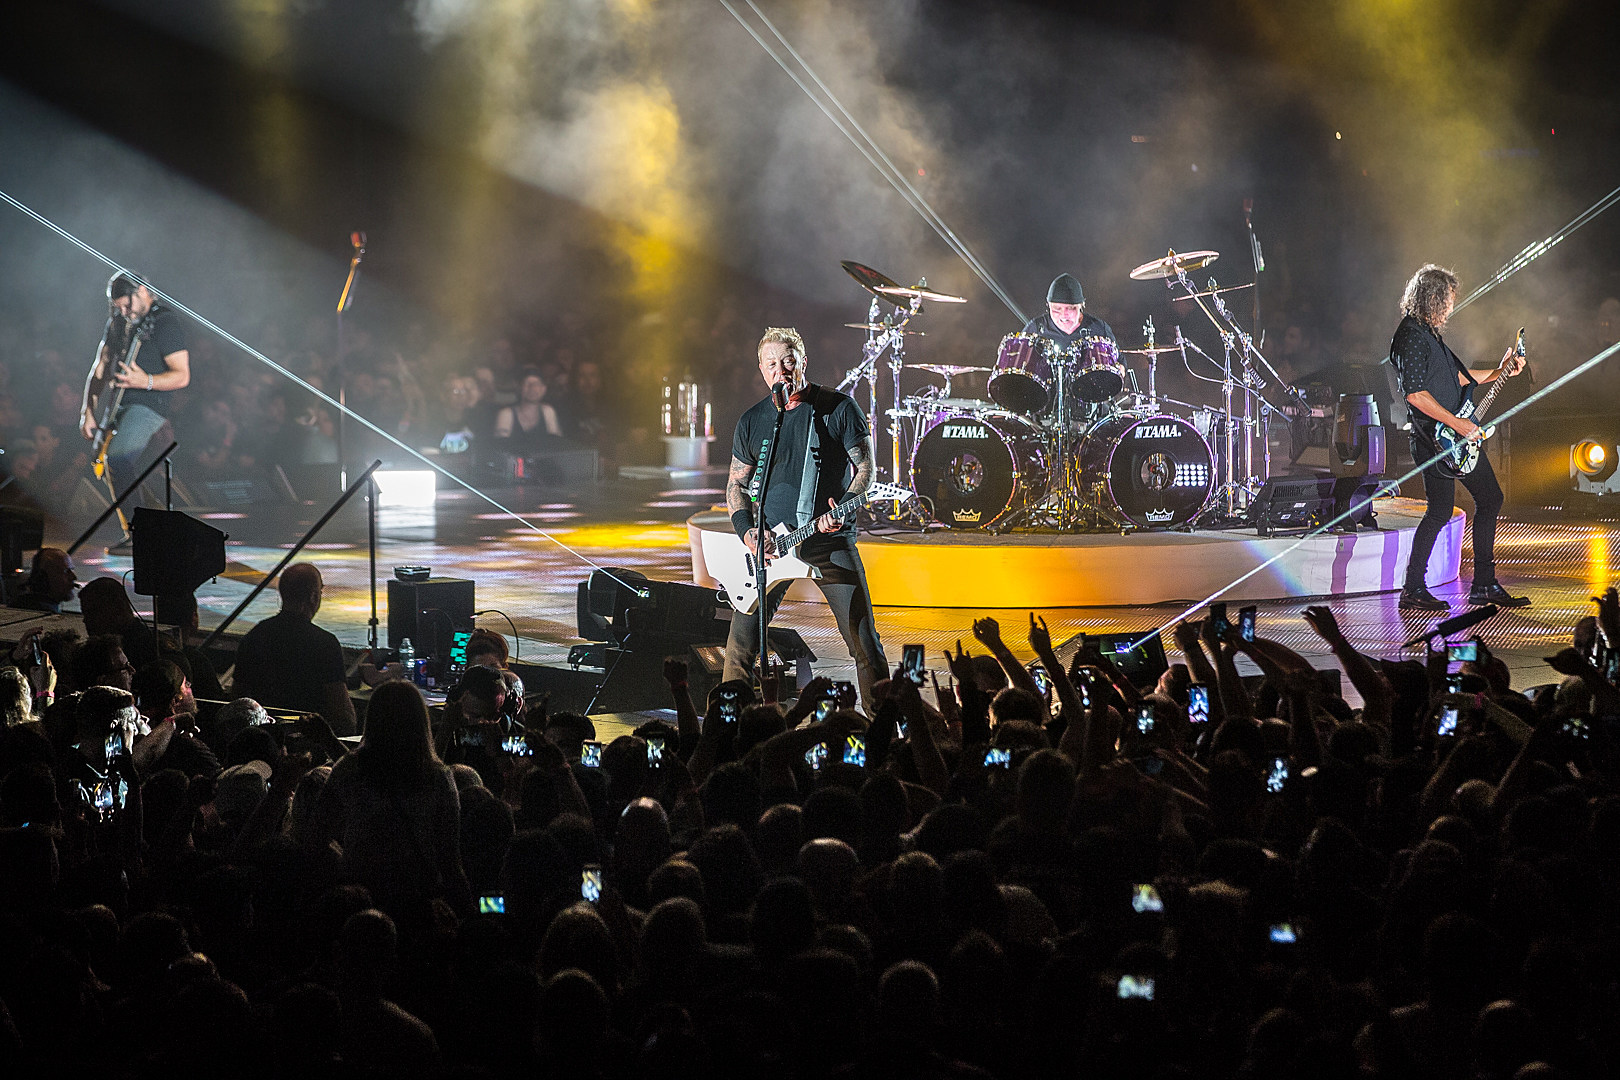 Man Arrested After Allegedly Urinating on a Family at Metallica Concert